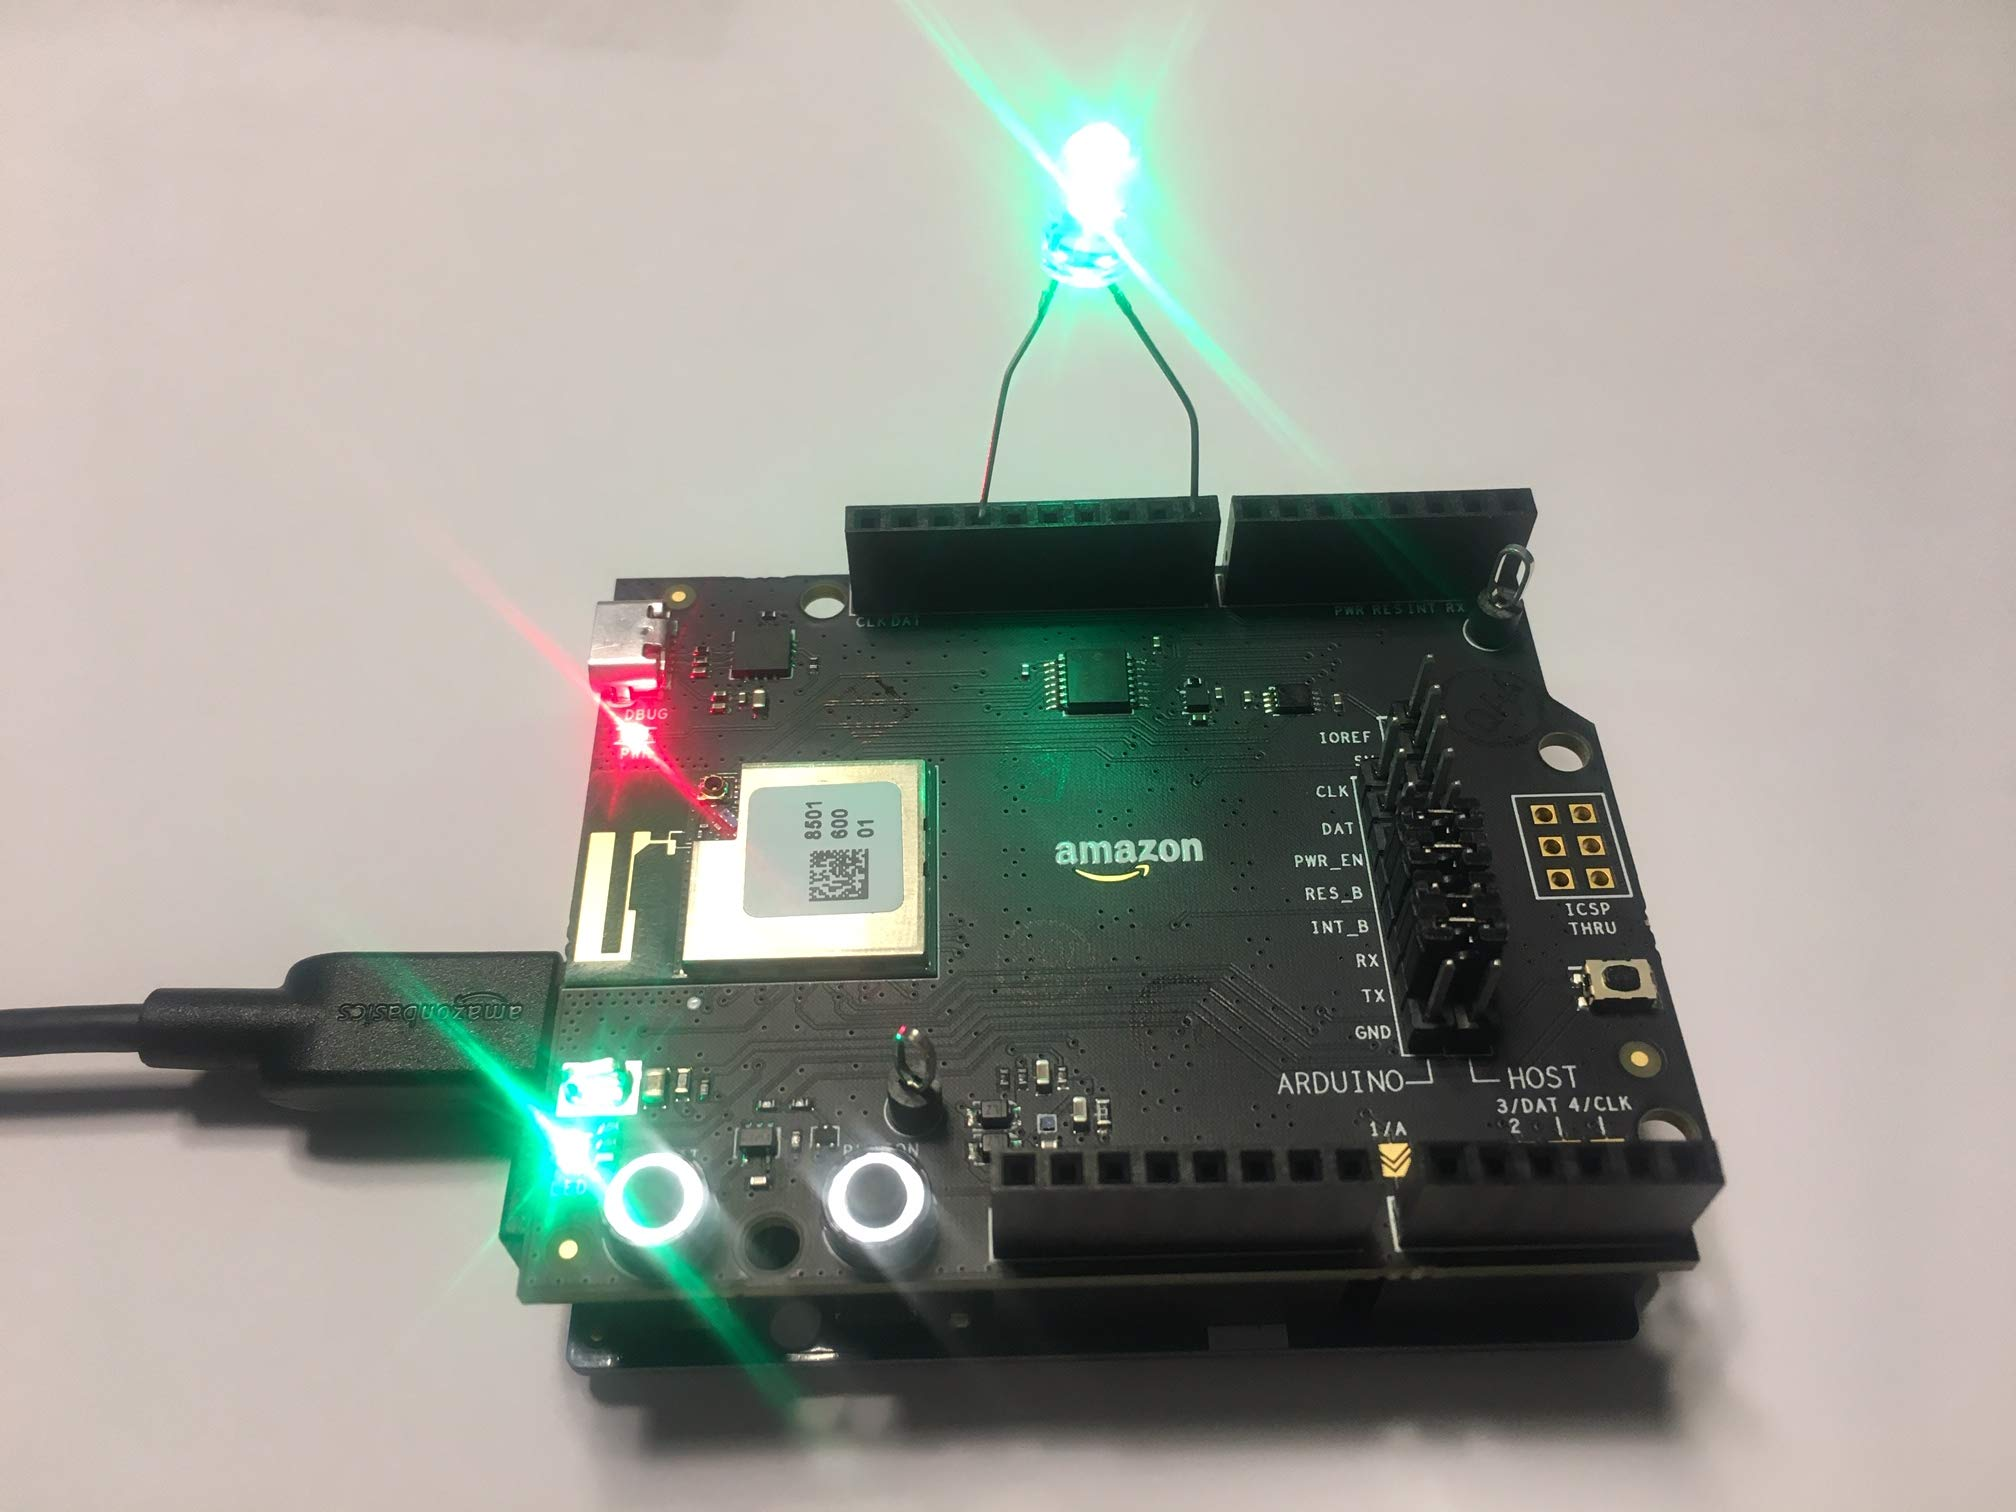 Development Board and Arduino Zero connected, with LED light on